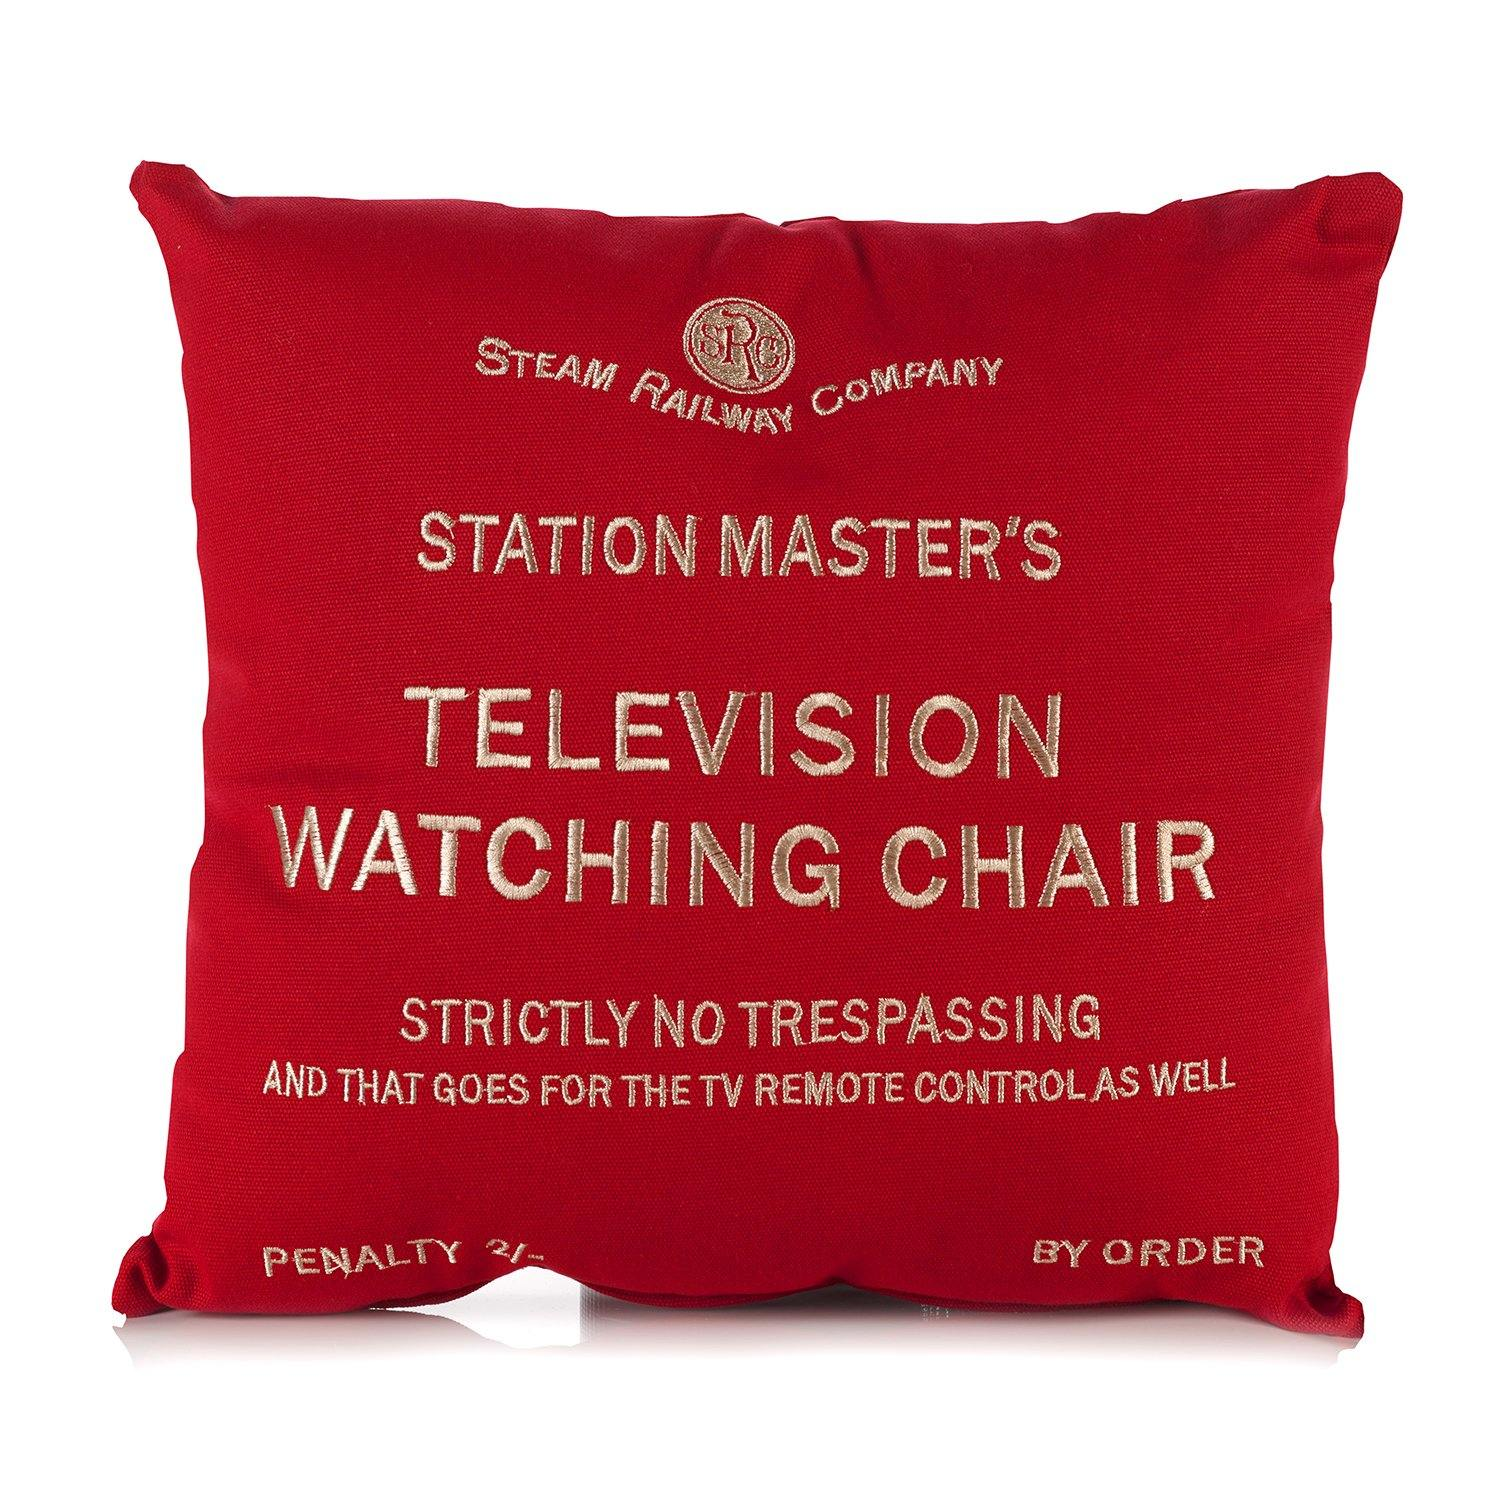 Television Watching Chair Cushion